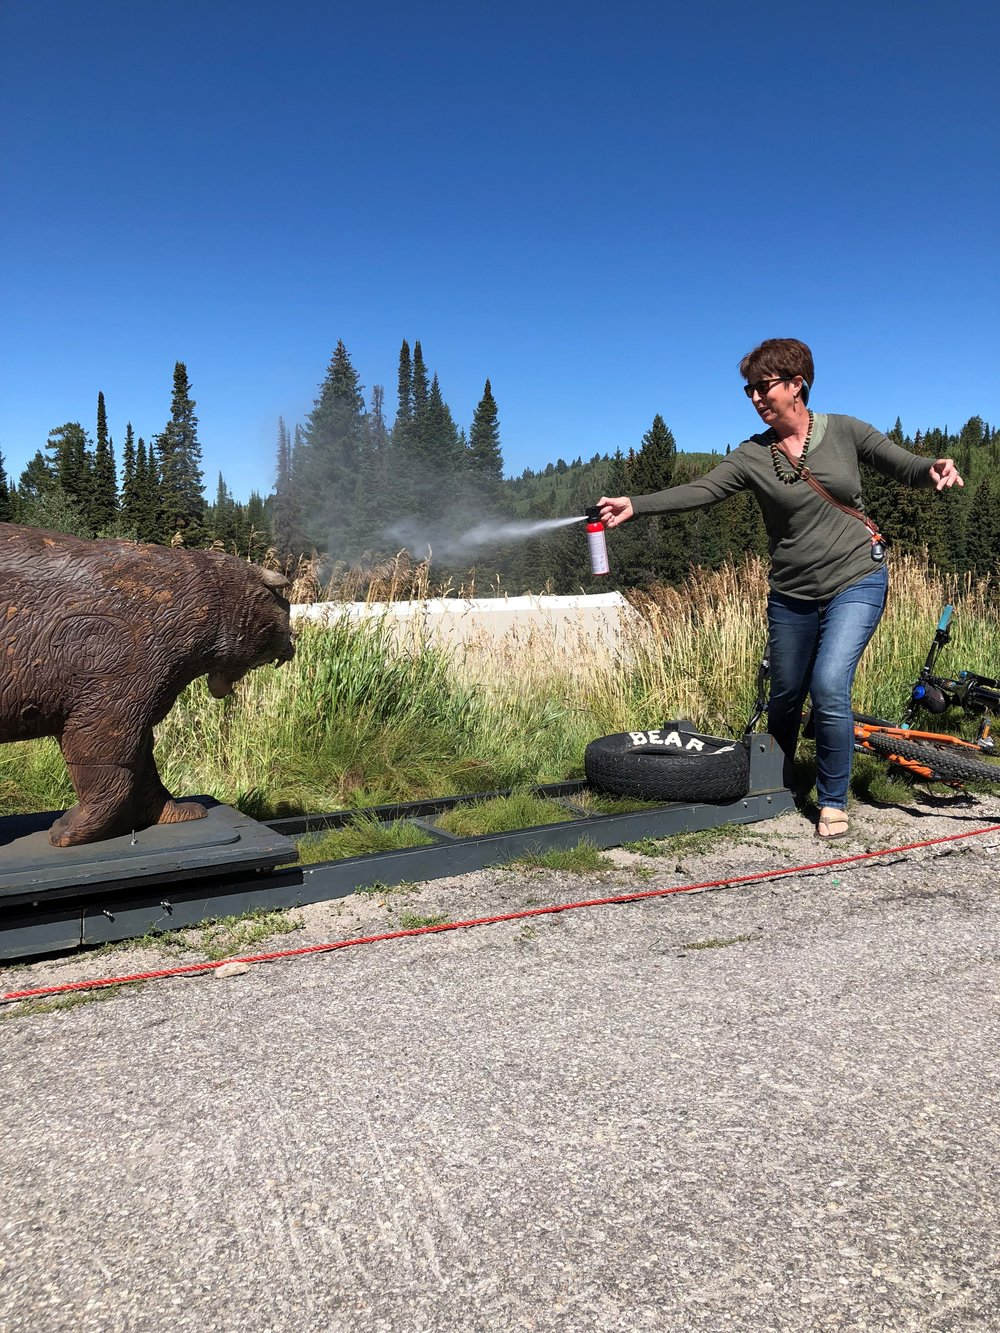 Testing her quick-draw skills with the Charger. We brought this mechanical charging bear to an annual mountain bike festival in Teton Valley, Idaho. (Photo GYC.)